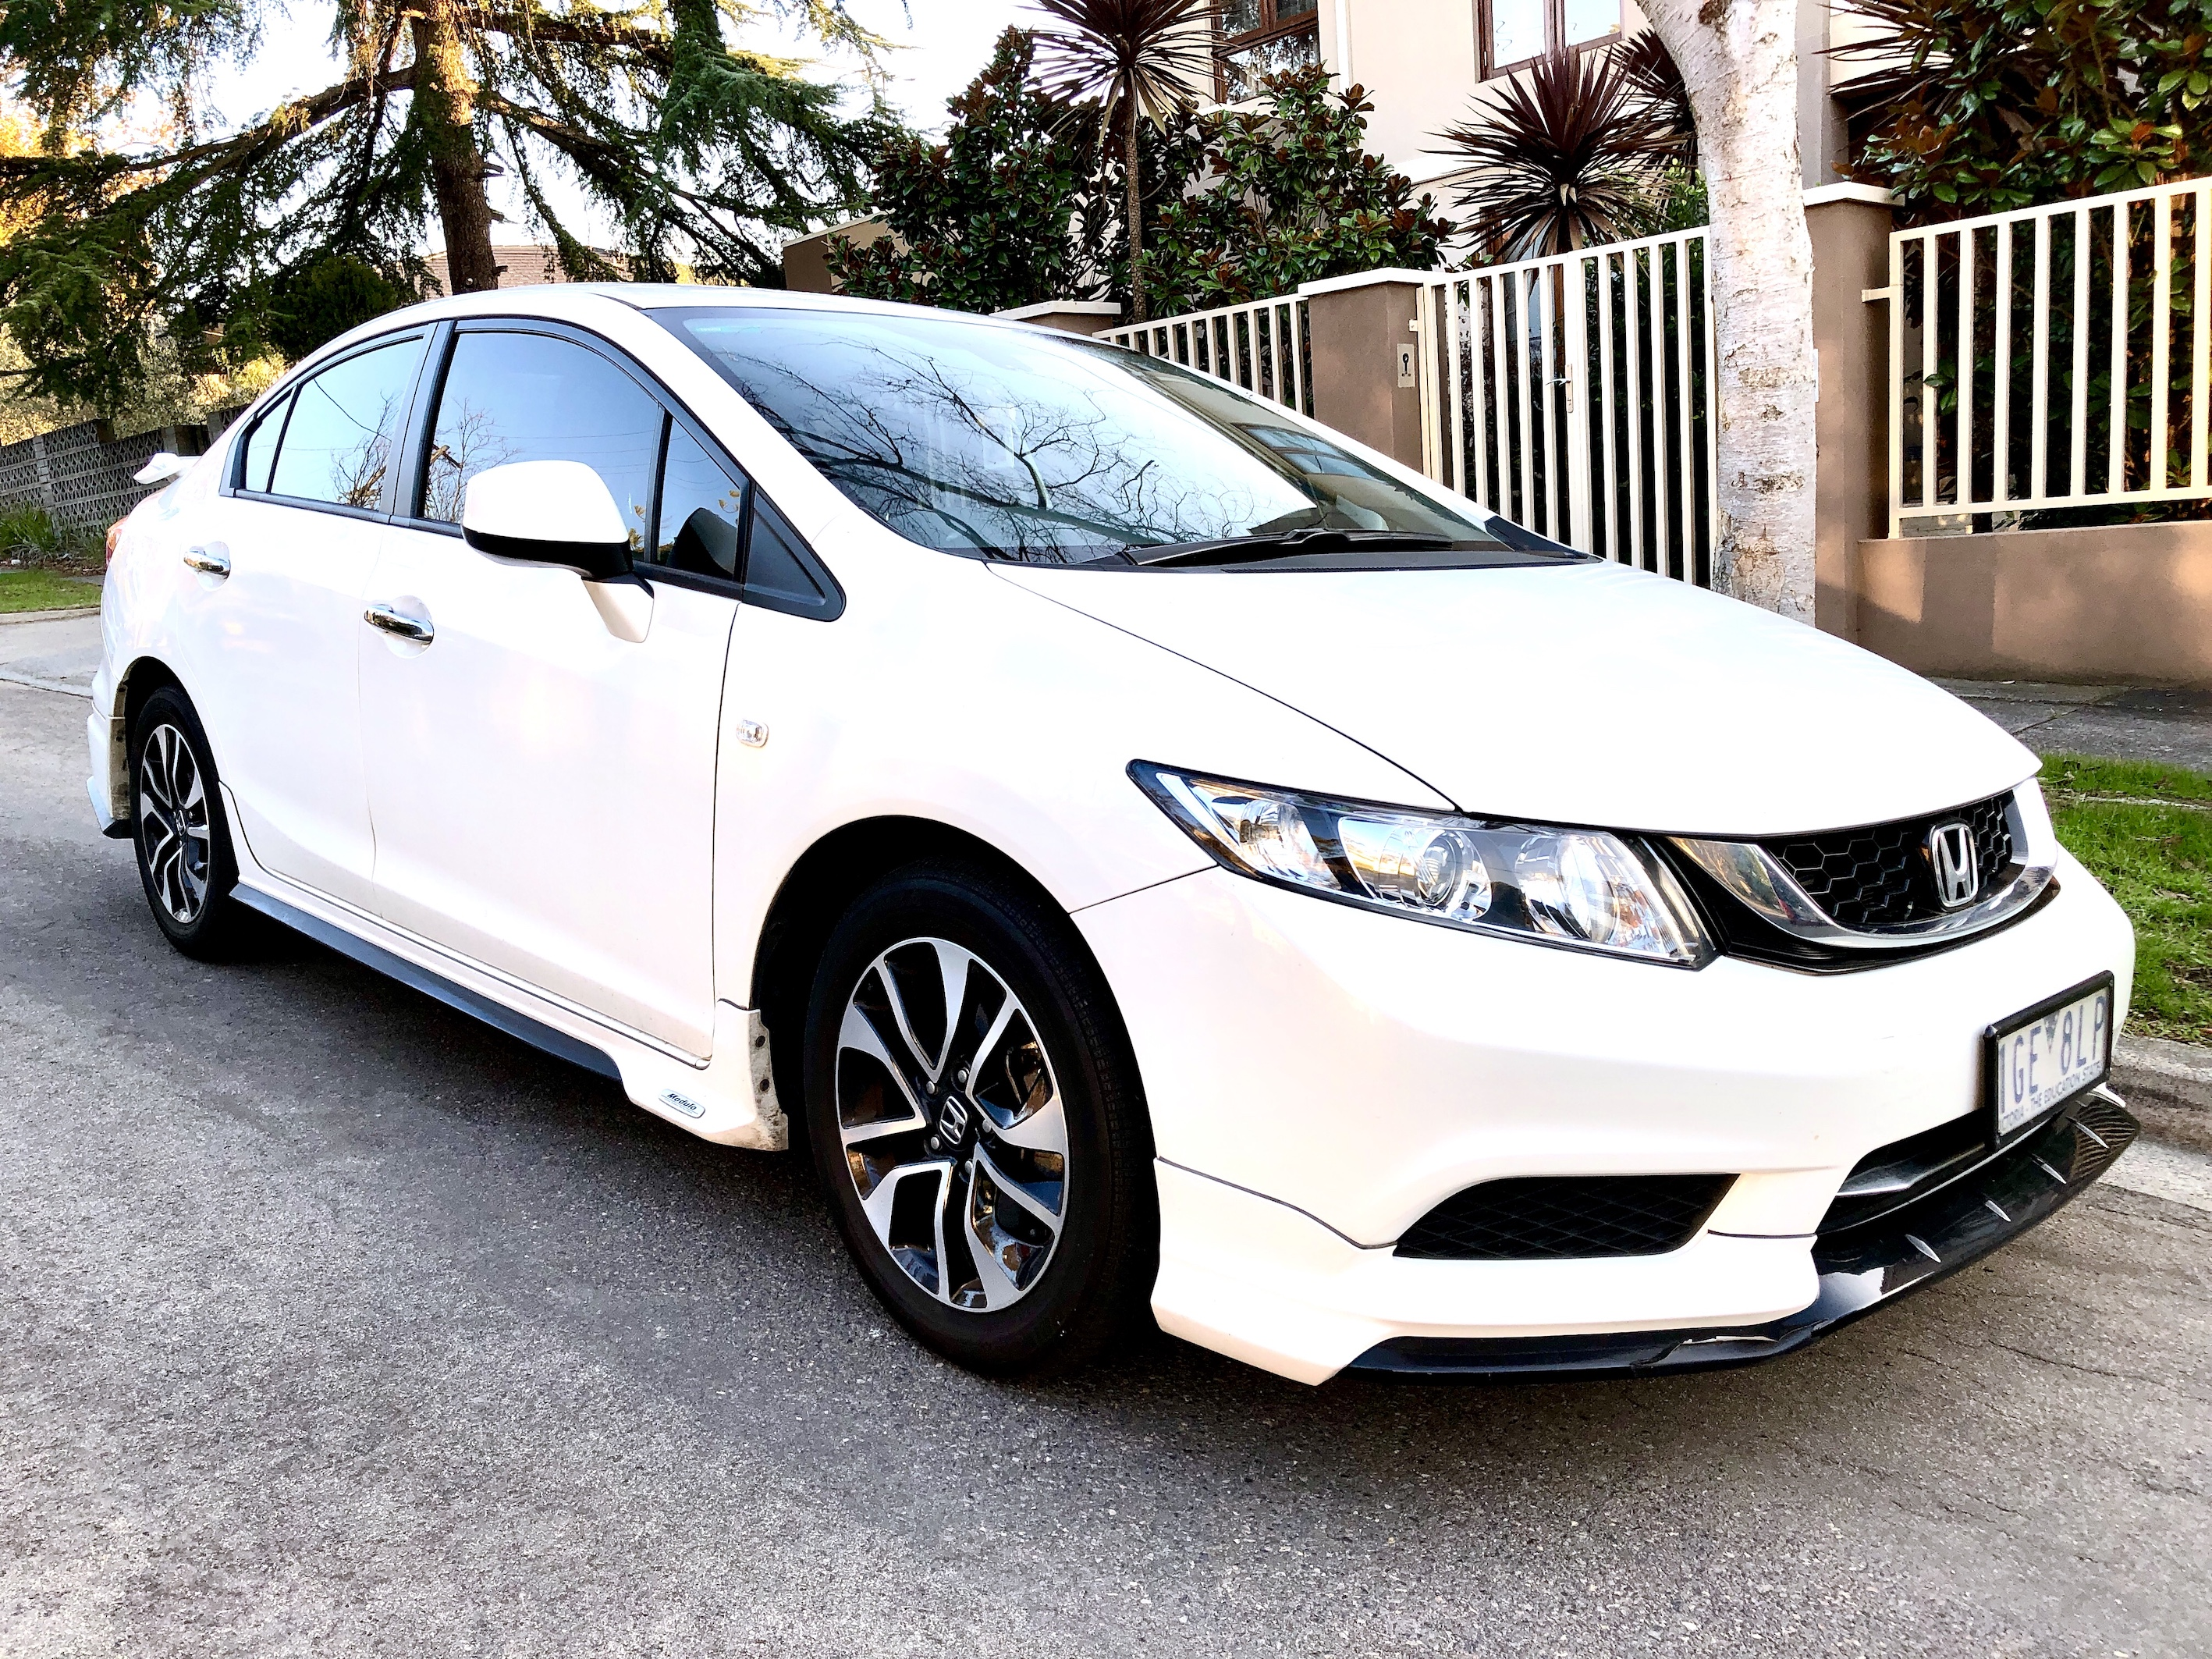 Picture of Sameer's 2015 Honda Civic